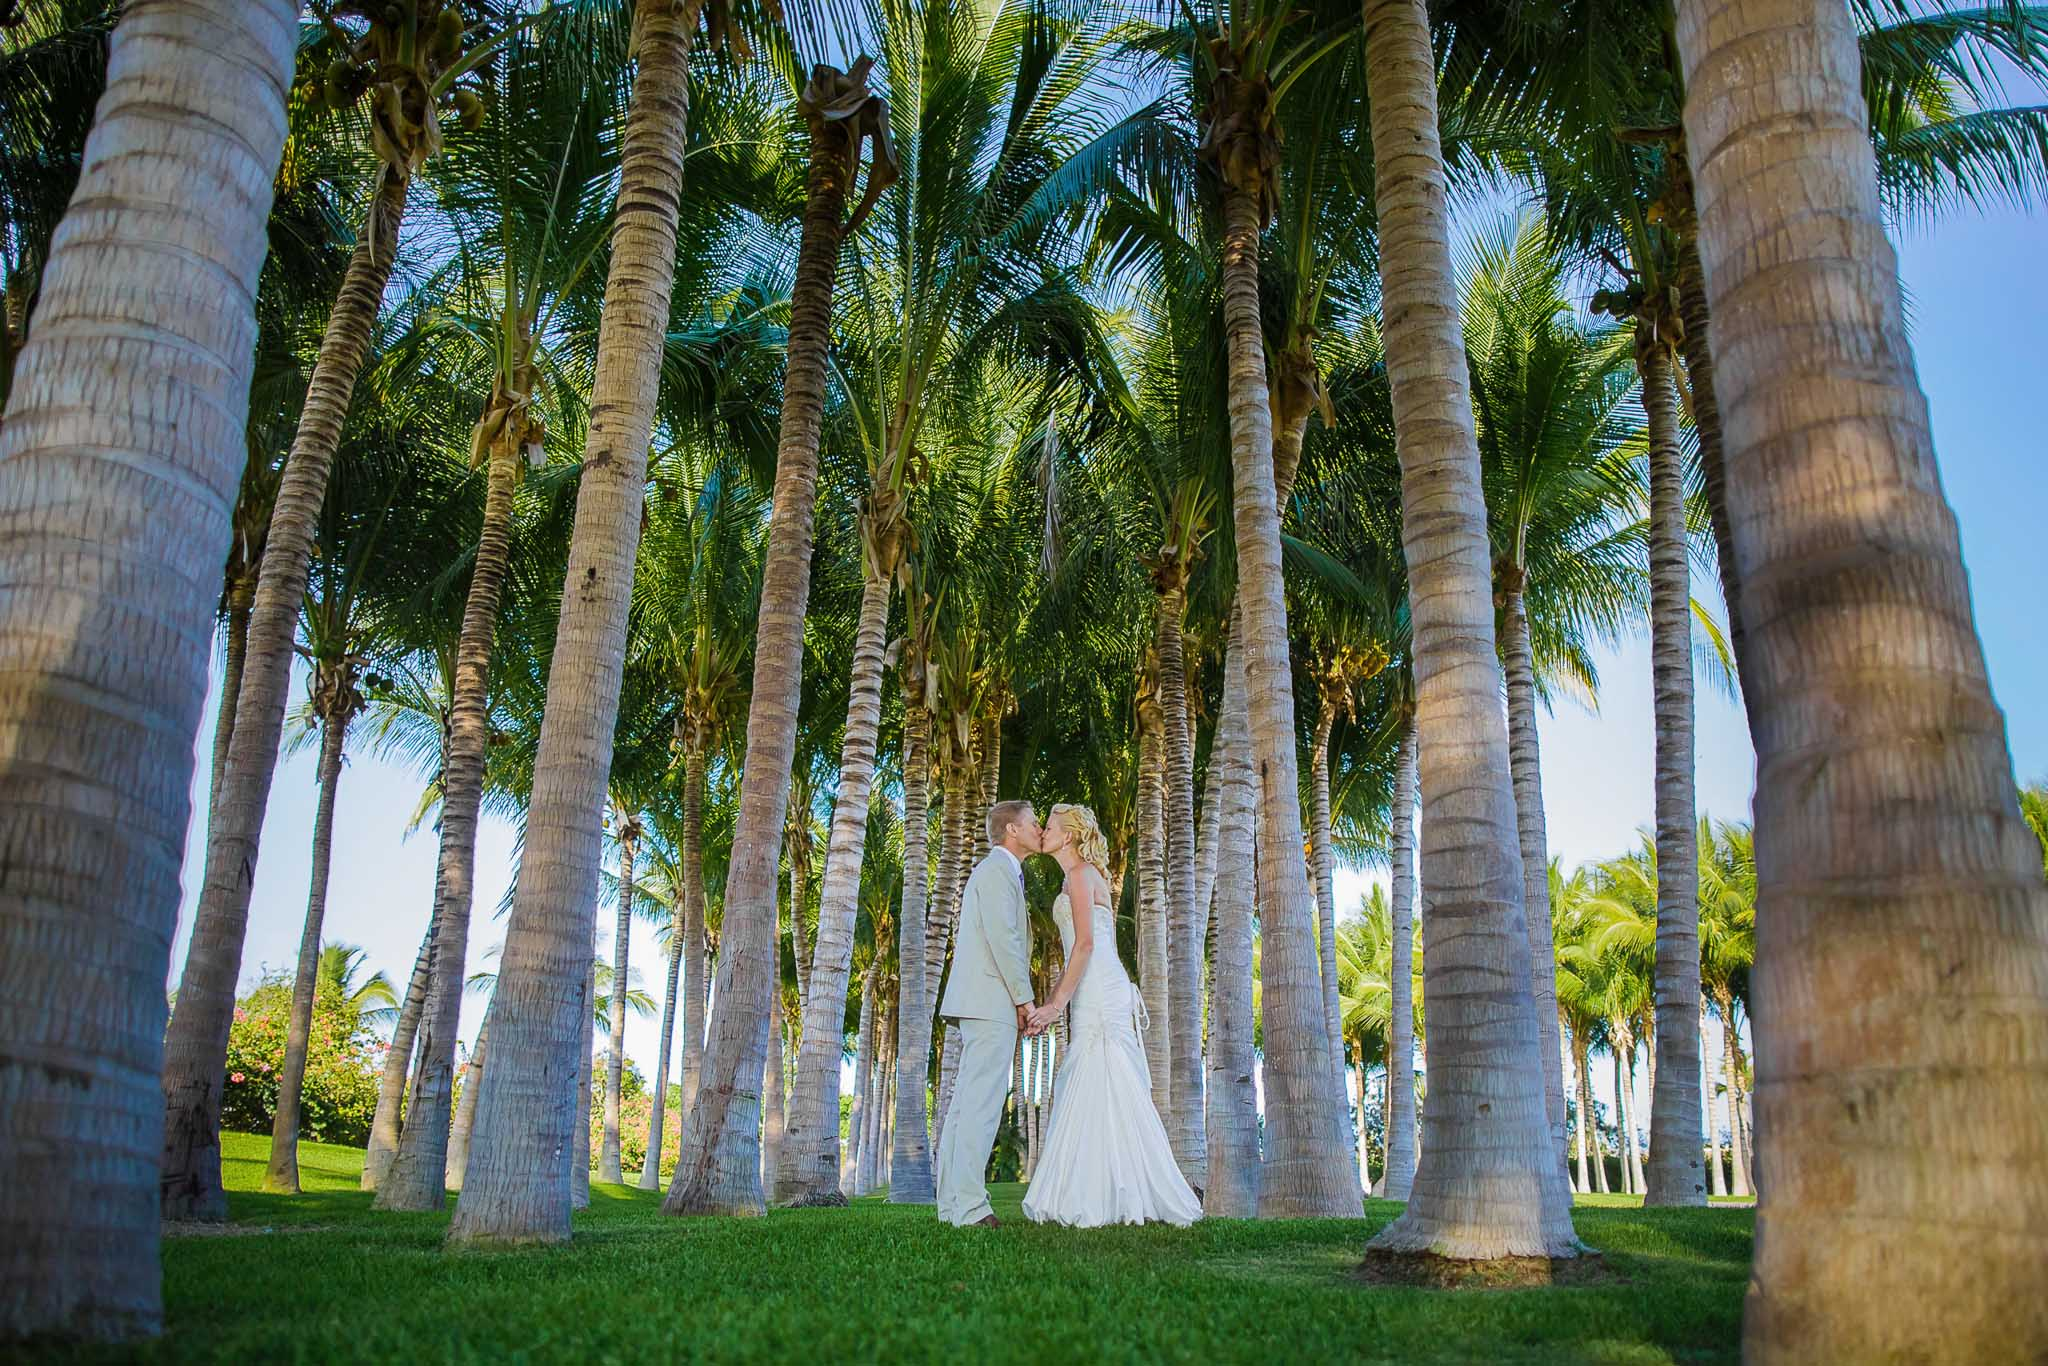 Destination wedding photo in Mexico